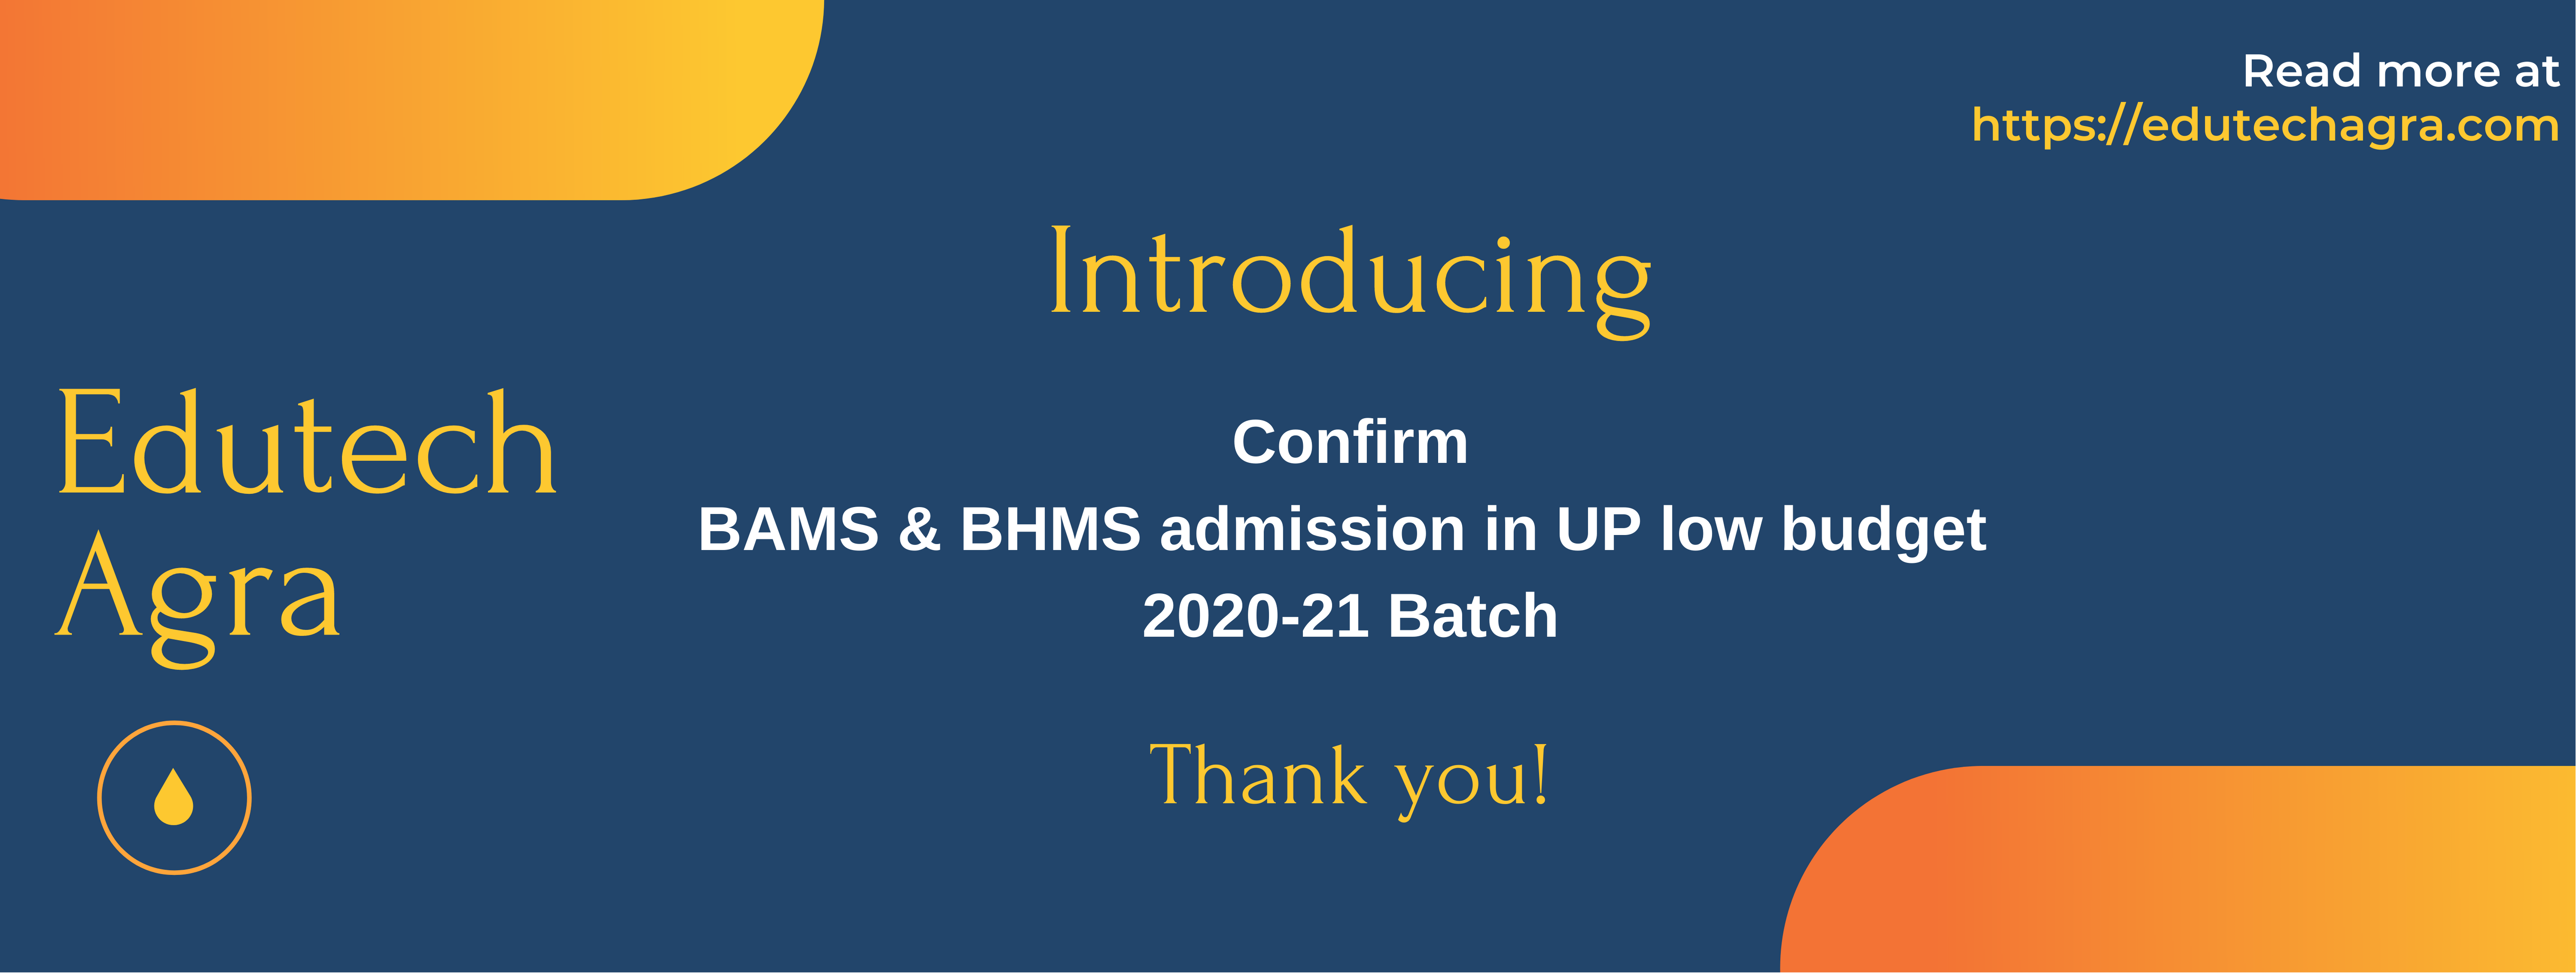 Confirm BAMS & BHMS admission in UP low budget 2020-21 Batch